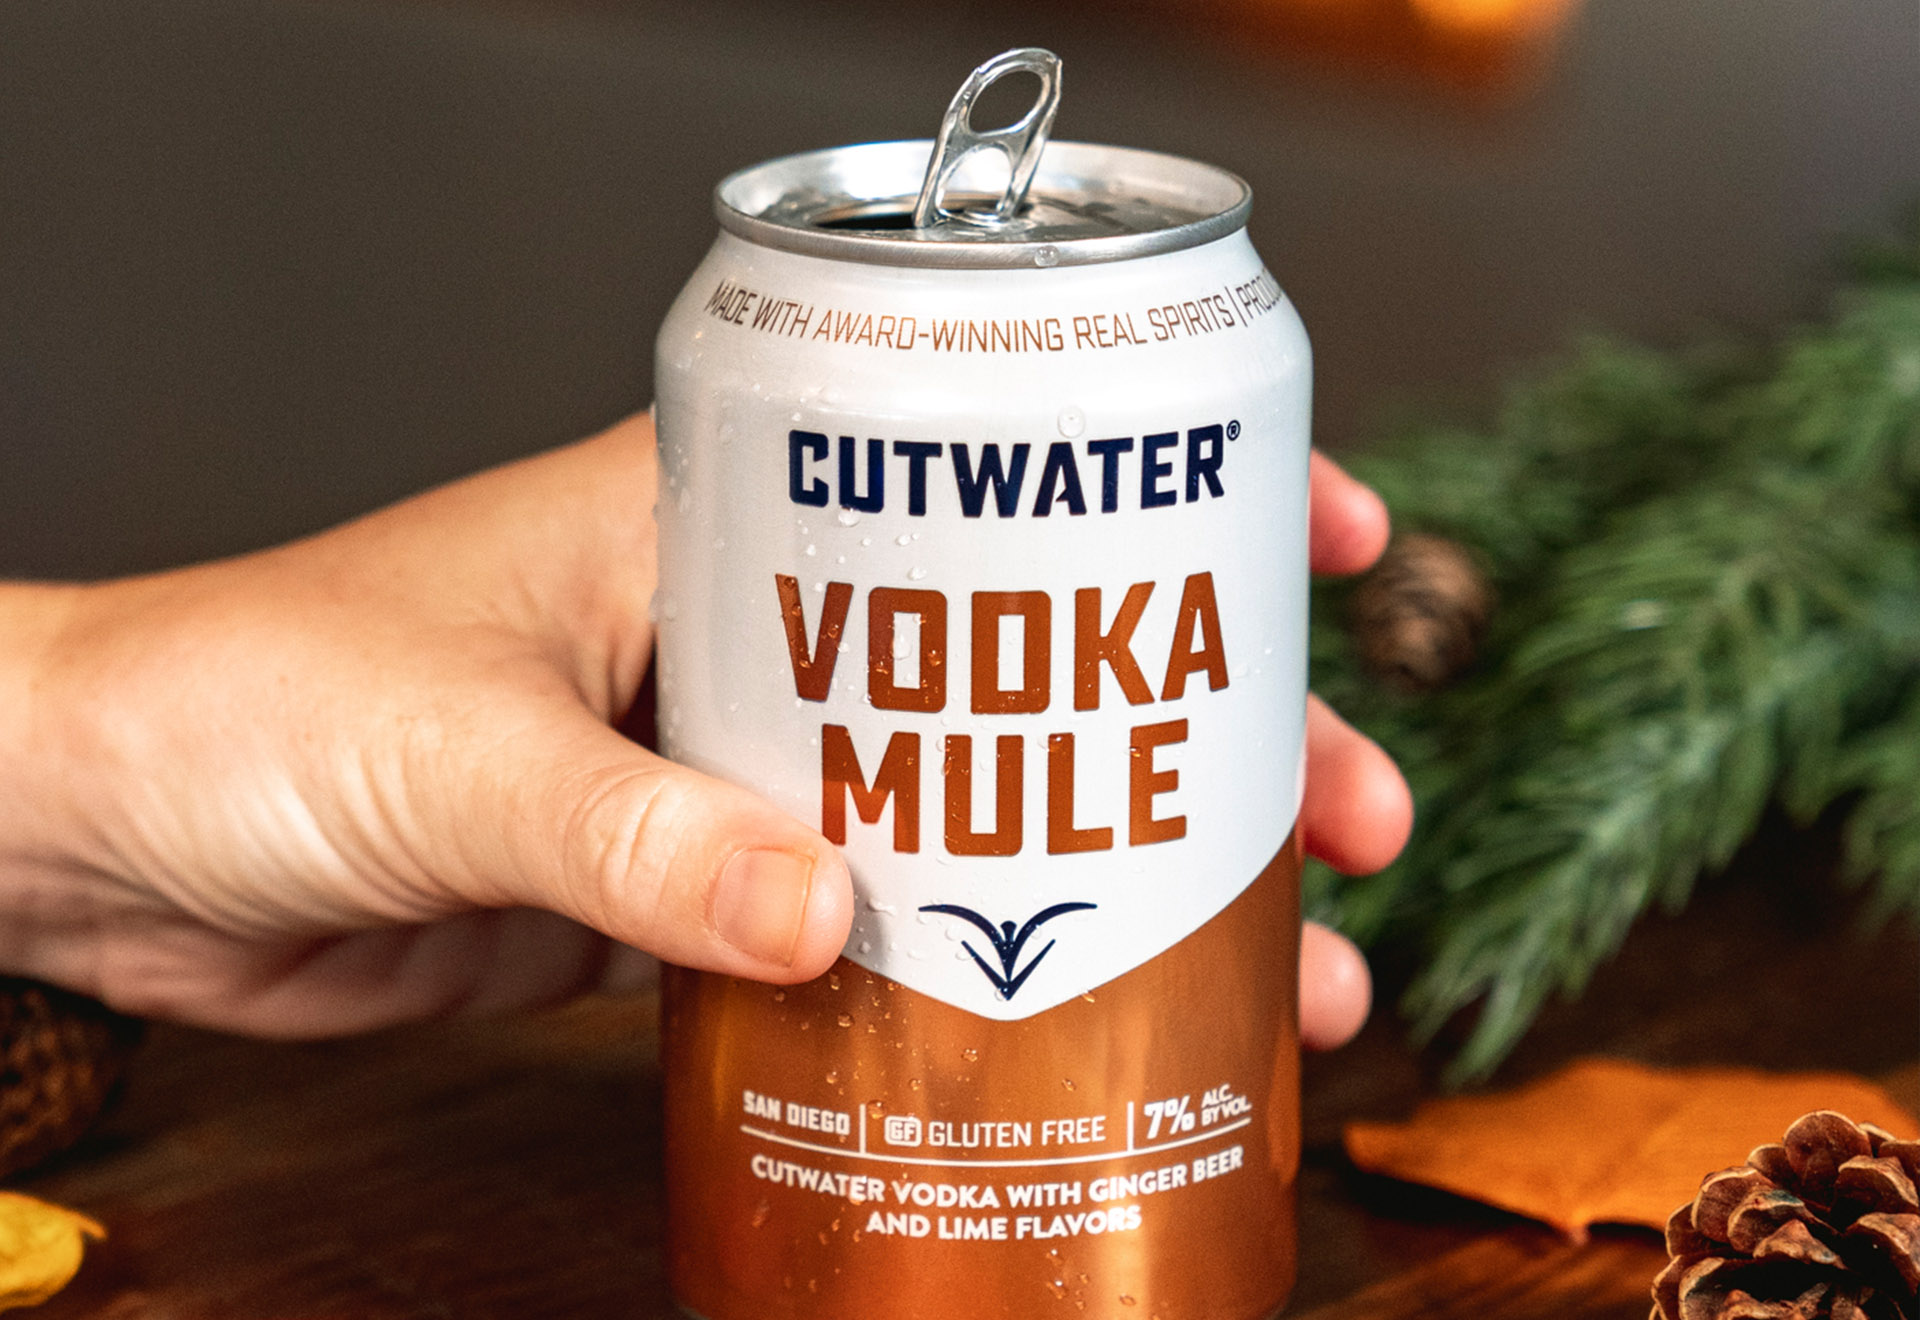 Vodka Mule at Thanksgiving